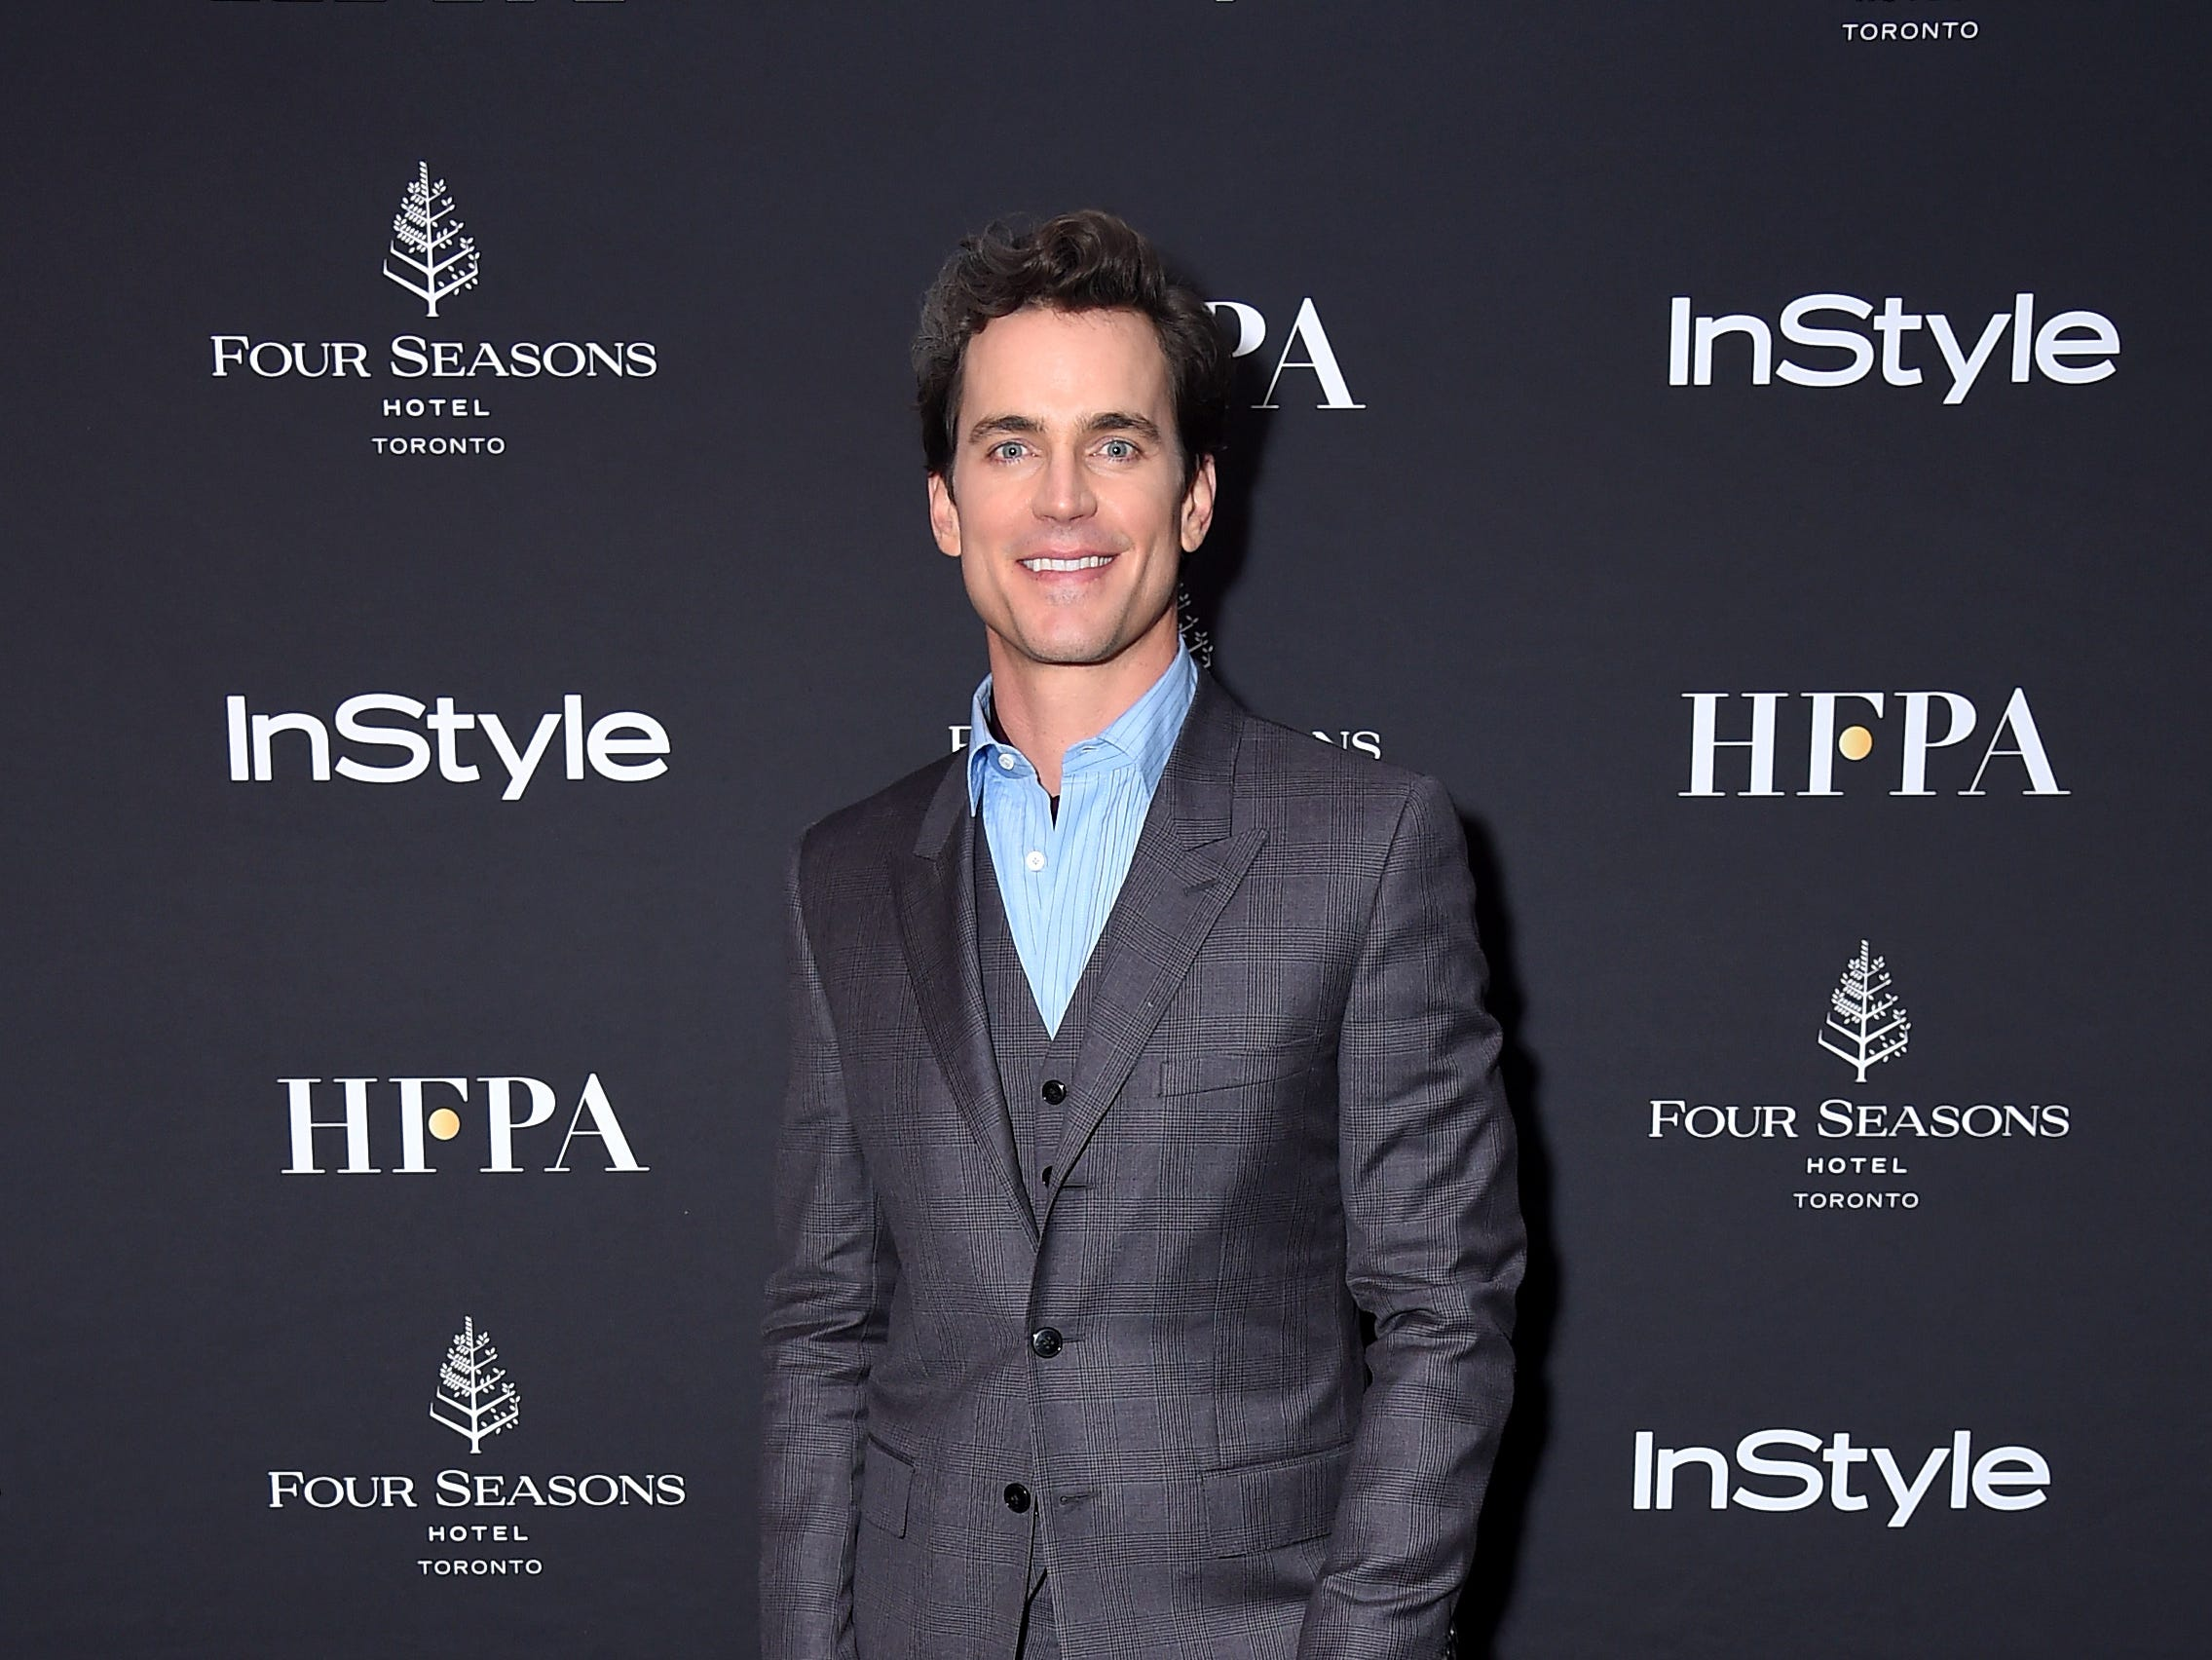 TORONTO, ON - SEPTEMBER 08:  Matt Bomer attends The Hollywood Foreign Press Association and InStyle Party during 2018 Toronto International Film Festival at Four Seasons Hotel on September 8, 2018 in Toronto, Canada.  (Photo by Michael Loccisano/Getty Images,) ORG XMIT: 775218497 ORIG FILE ID: 1029603318